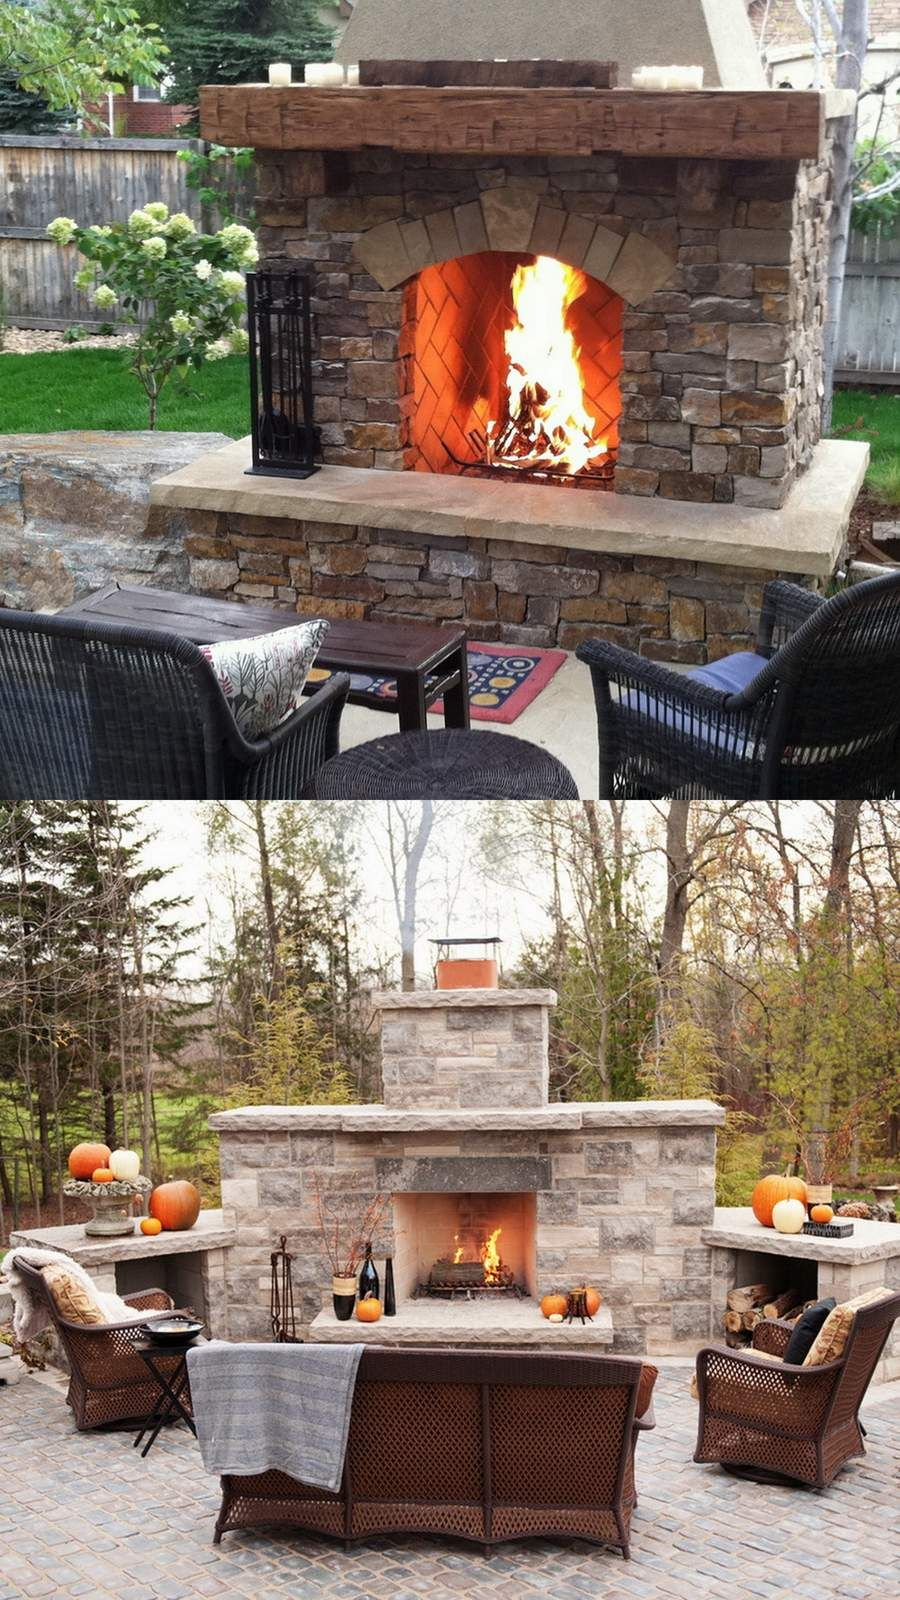 Amazing Outdoor Fireplace Designs Part 2 | Backyard ... on Amazing Outdoor Fireplaces id=14881